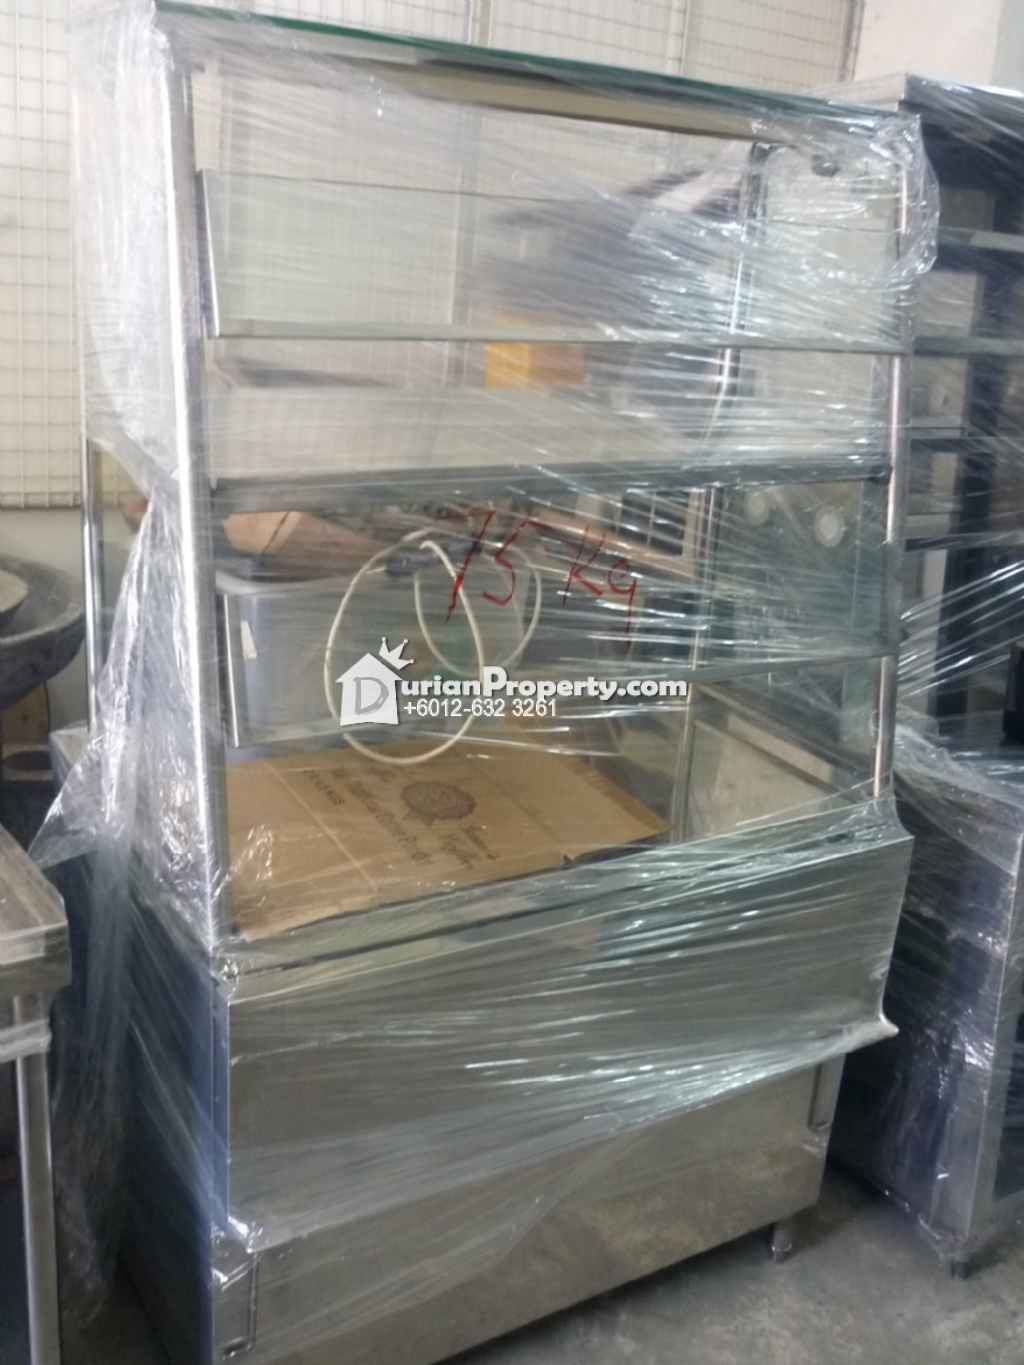 Stainless Steel Equipment-Stainless Steel Food Stall with Mirror For Sale